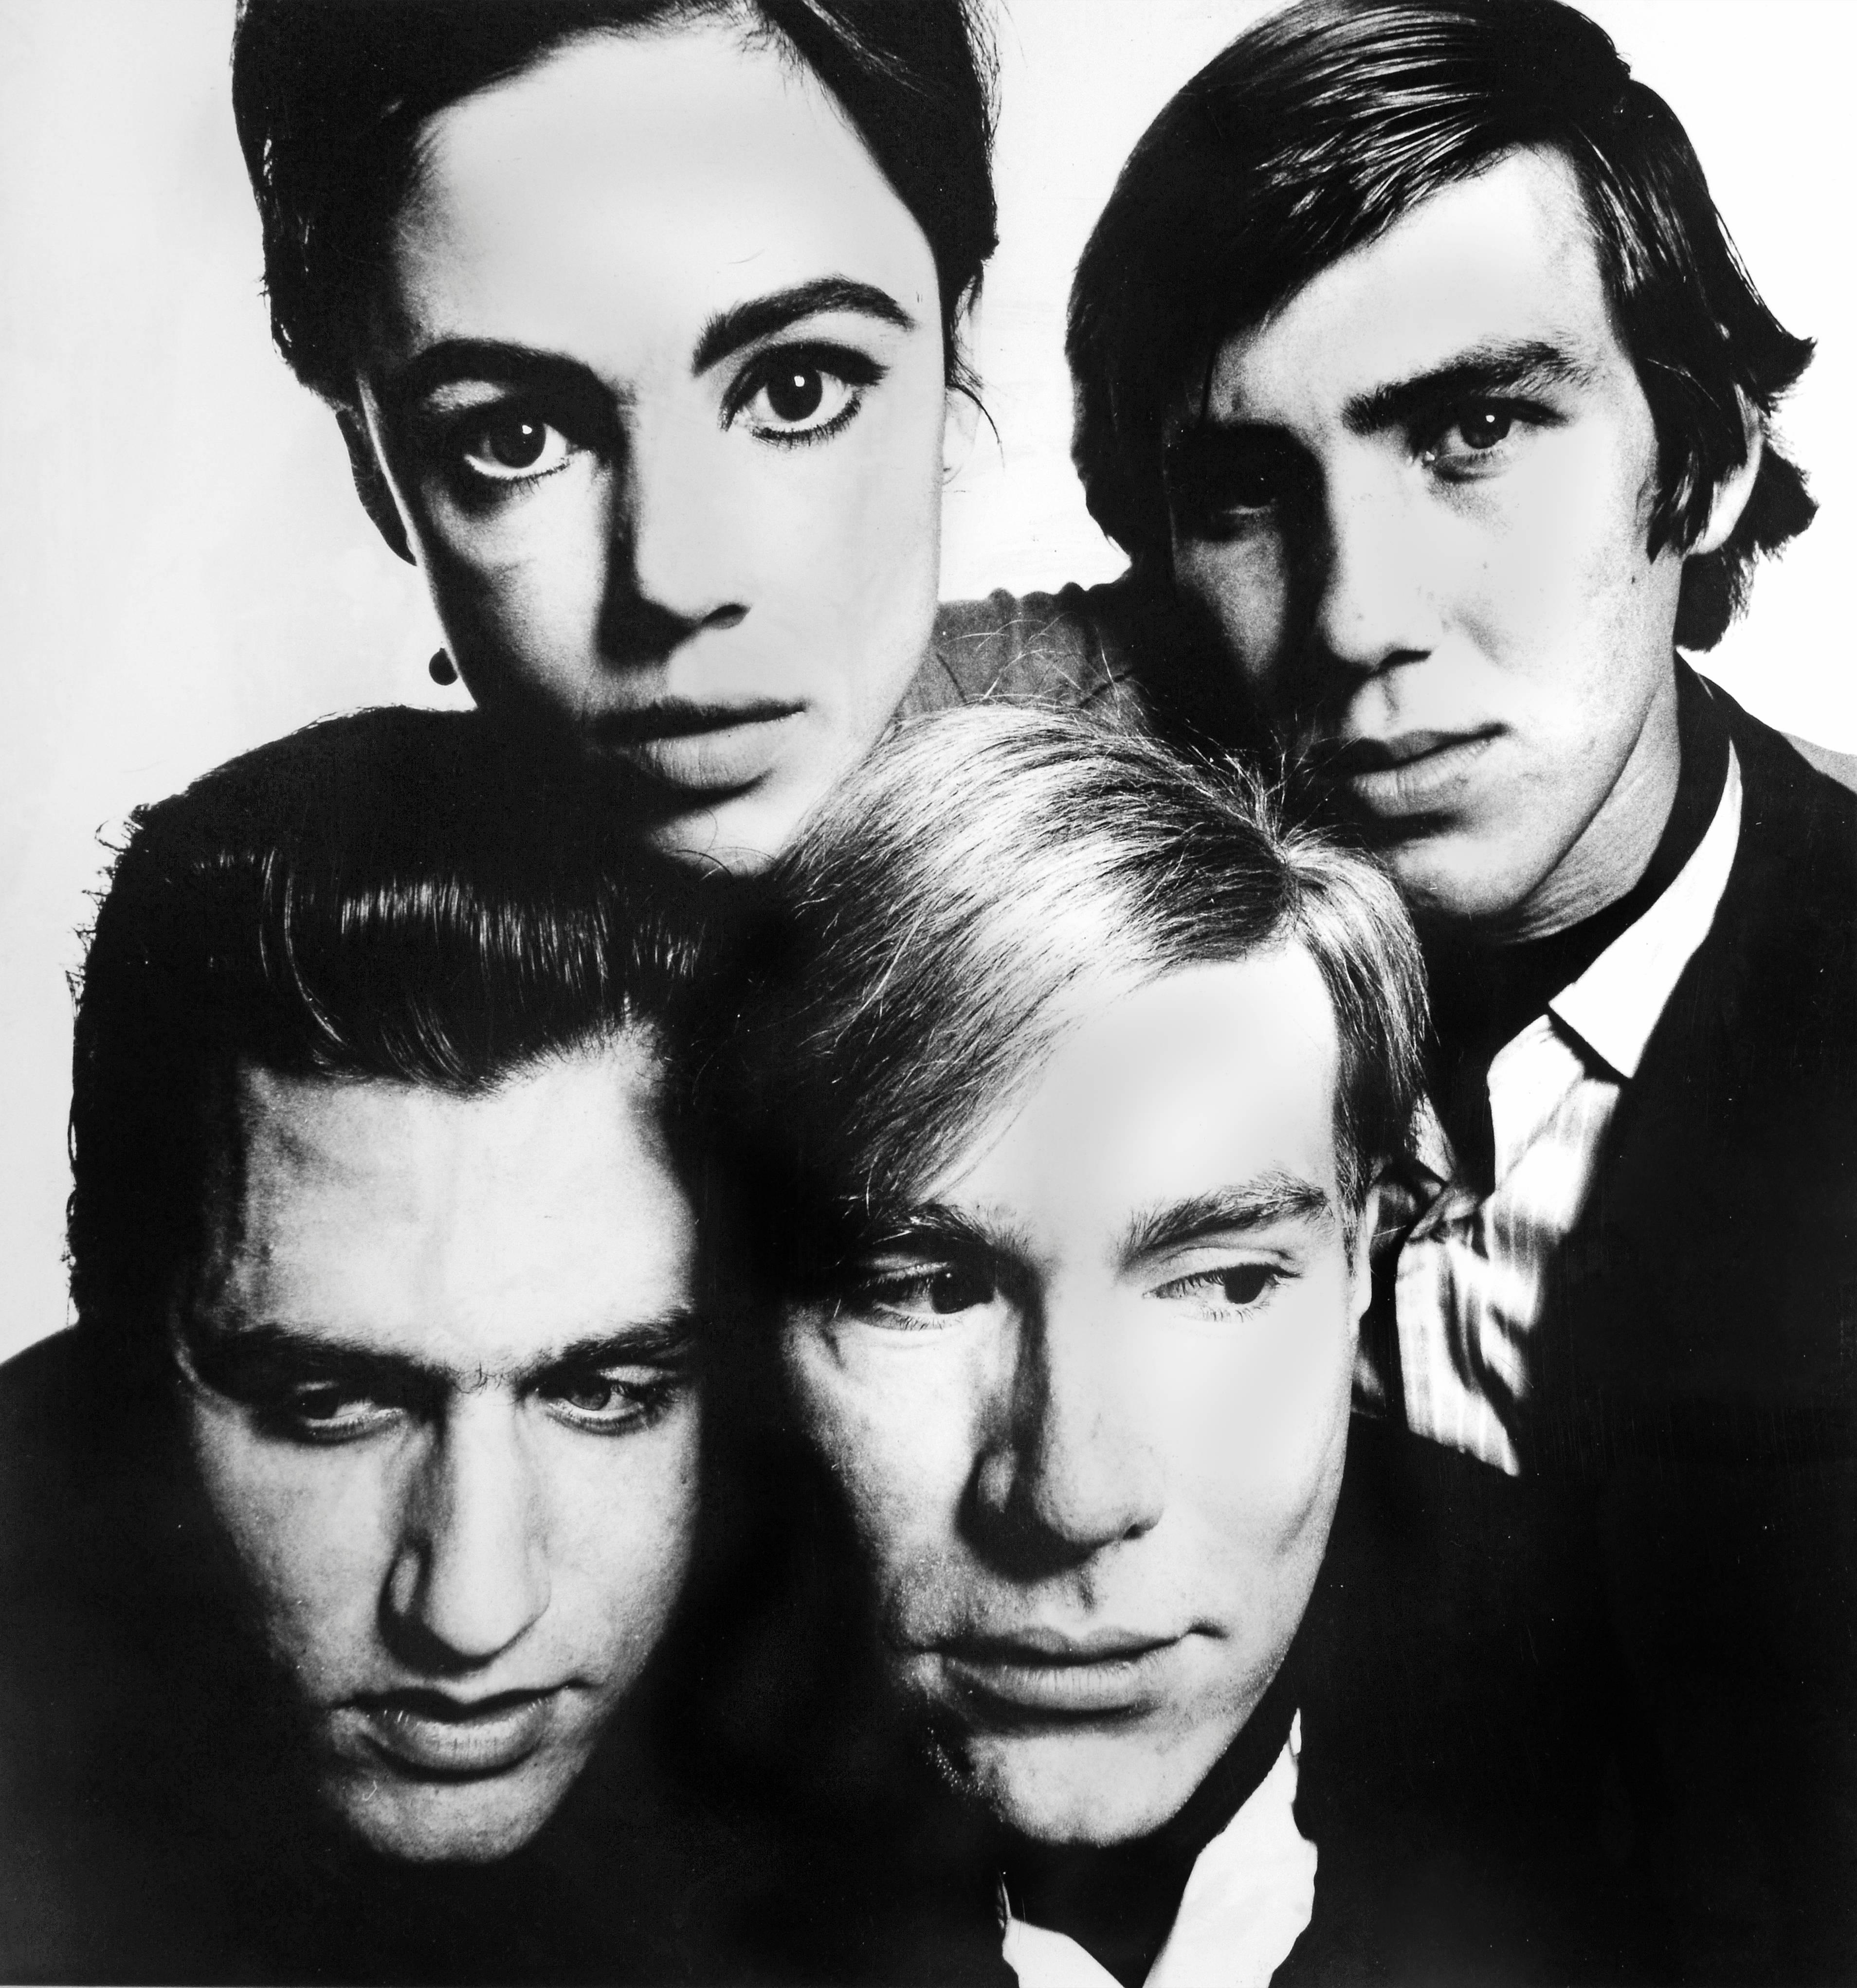 Andy Warhol and the Gang, 1965 - David Bailey (Portrait Photography)